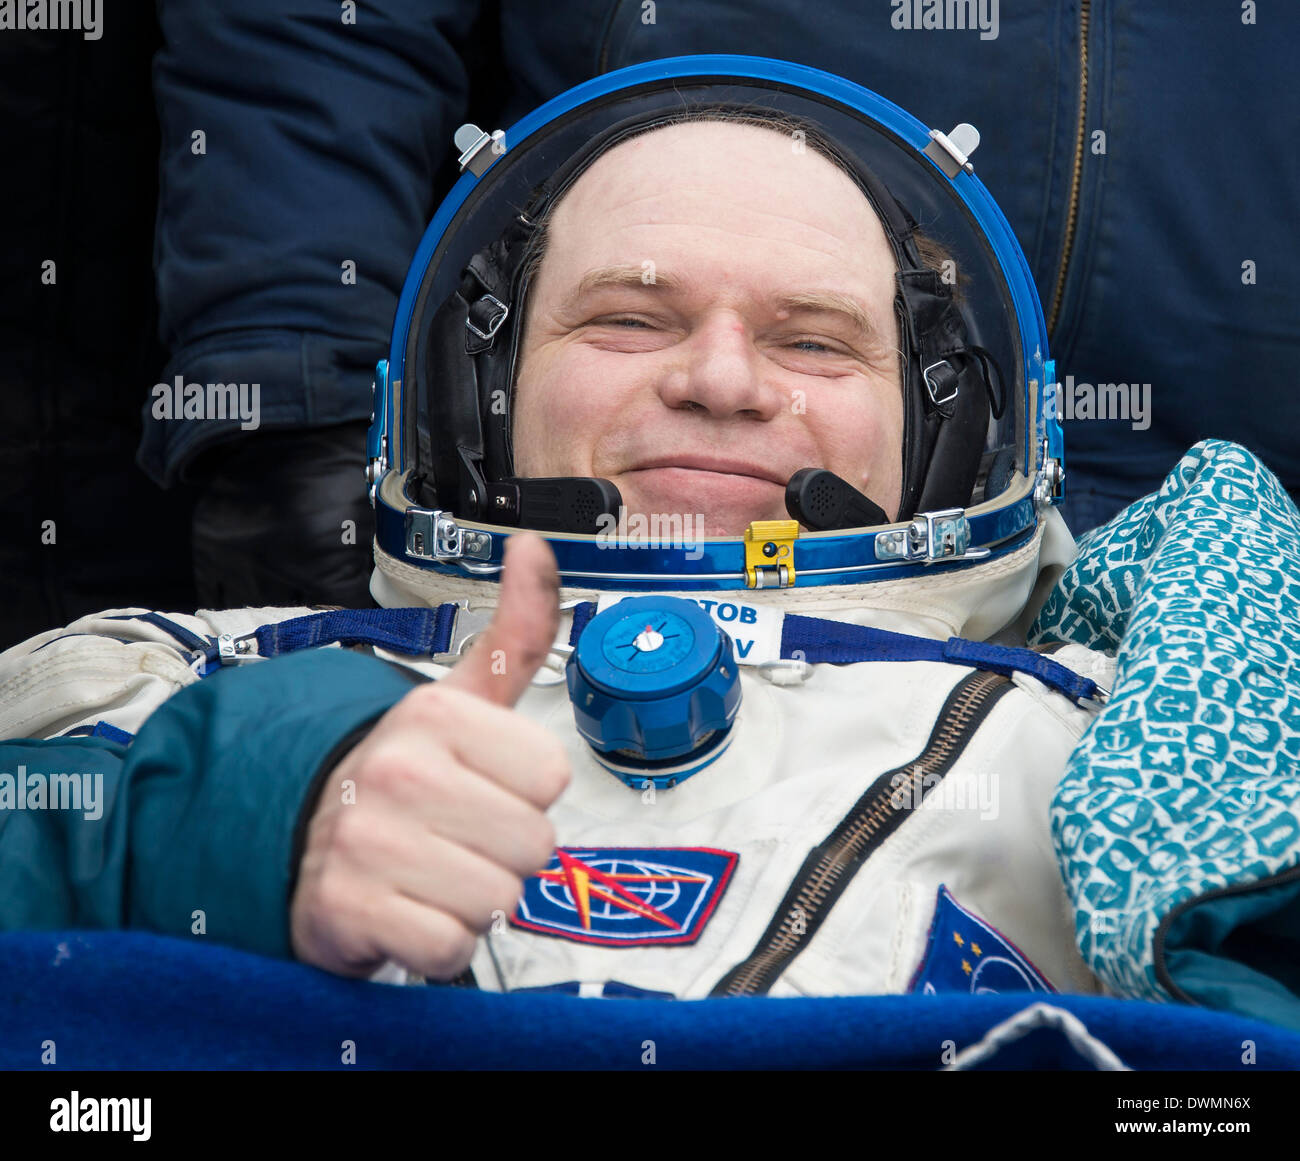 International Space State Expedition 38 Commander Oleg Kotov of the Russian Federal Space Agency gives a thumbs up outside of the Soyuz Capsule after landing in a Soyuz TMA-10M spacecraft March 11, 2014 near the town of Zhezkazgan, Kazakhstan. Hopkins, Kotov and Ryazanskiy returned to Earth after five and a half months onboard the International Space Station where they served as members of the Expedition 37 and 38 crews. - Stock Image